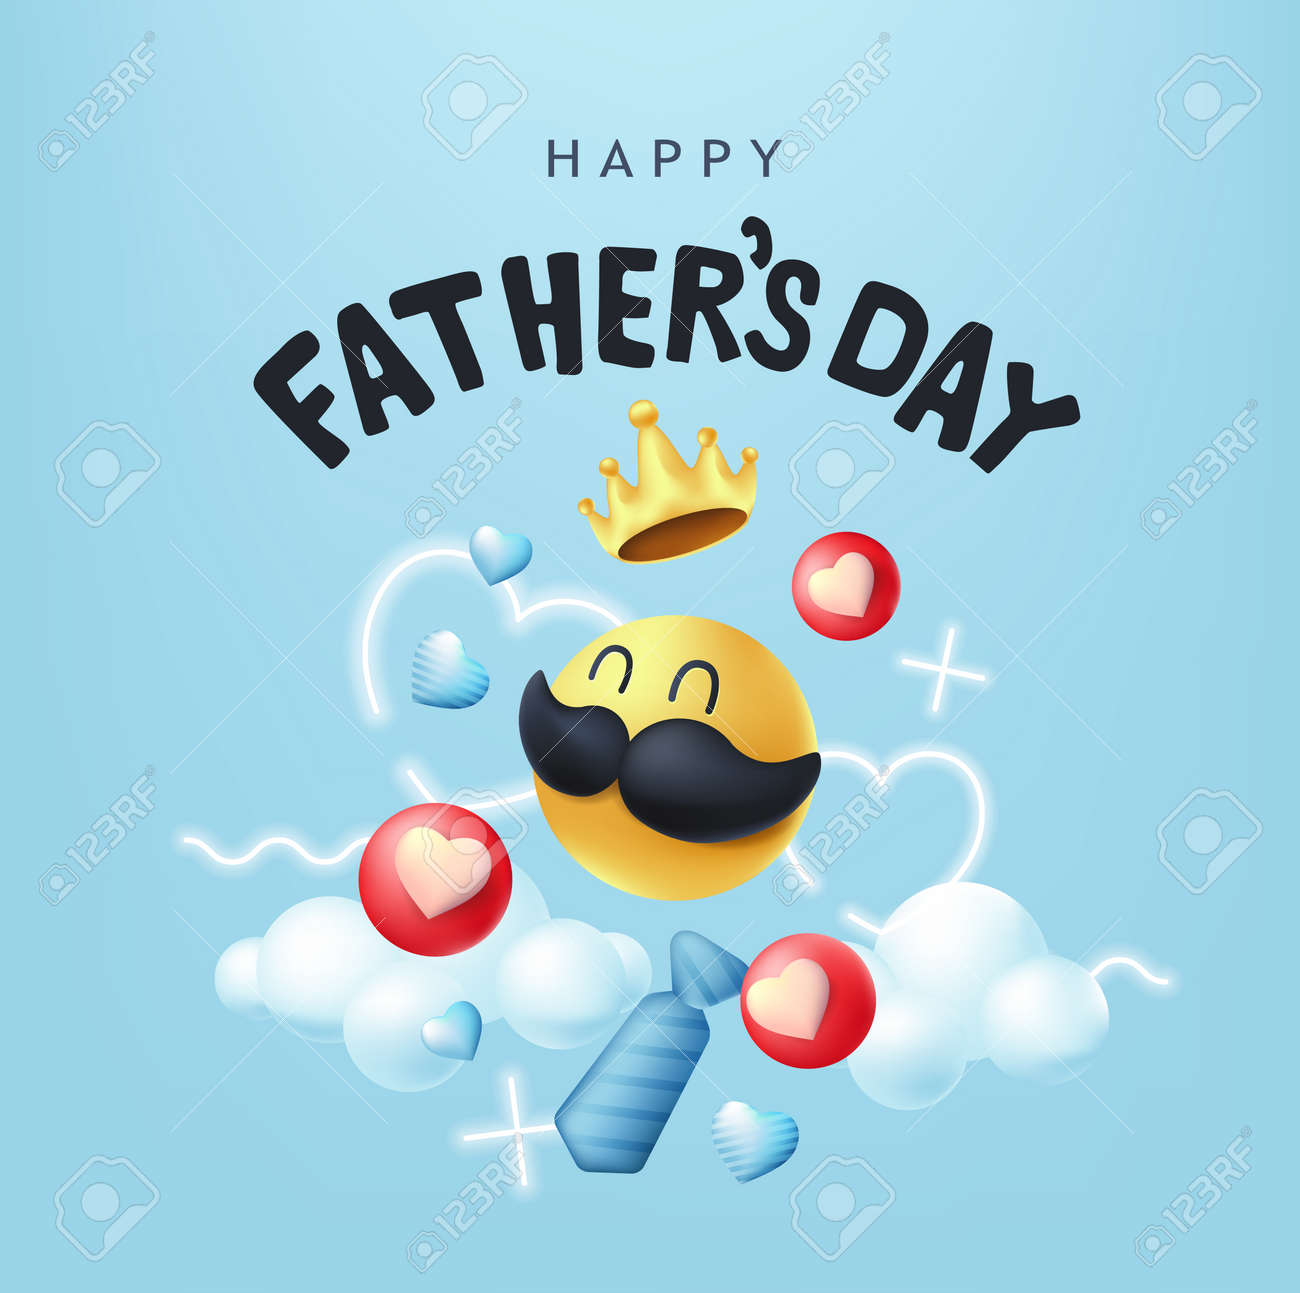 Happy Fathers Day banner background with mustache smiley - 168671060